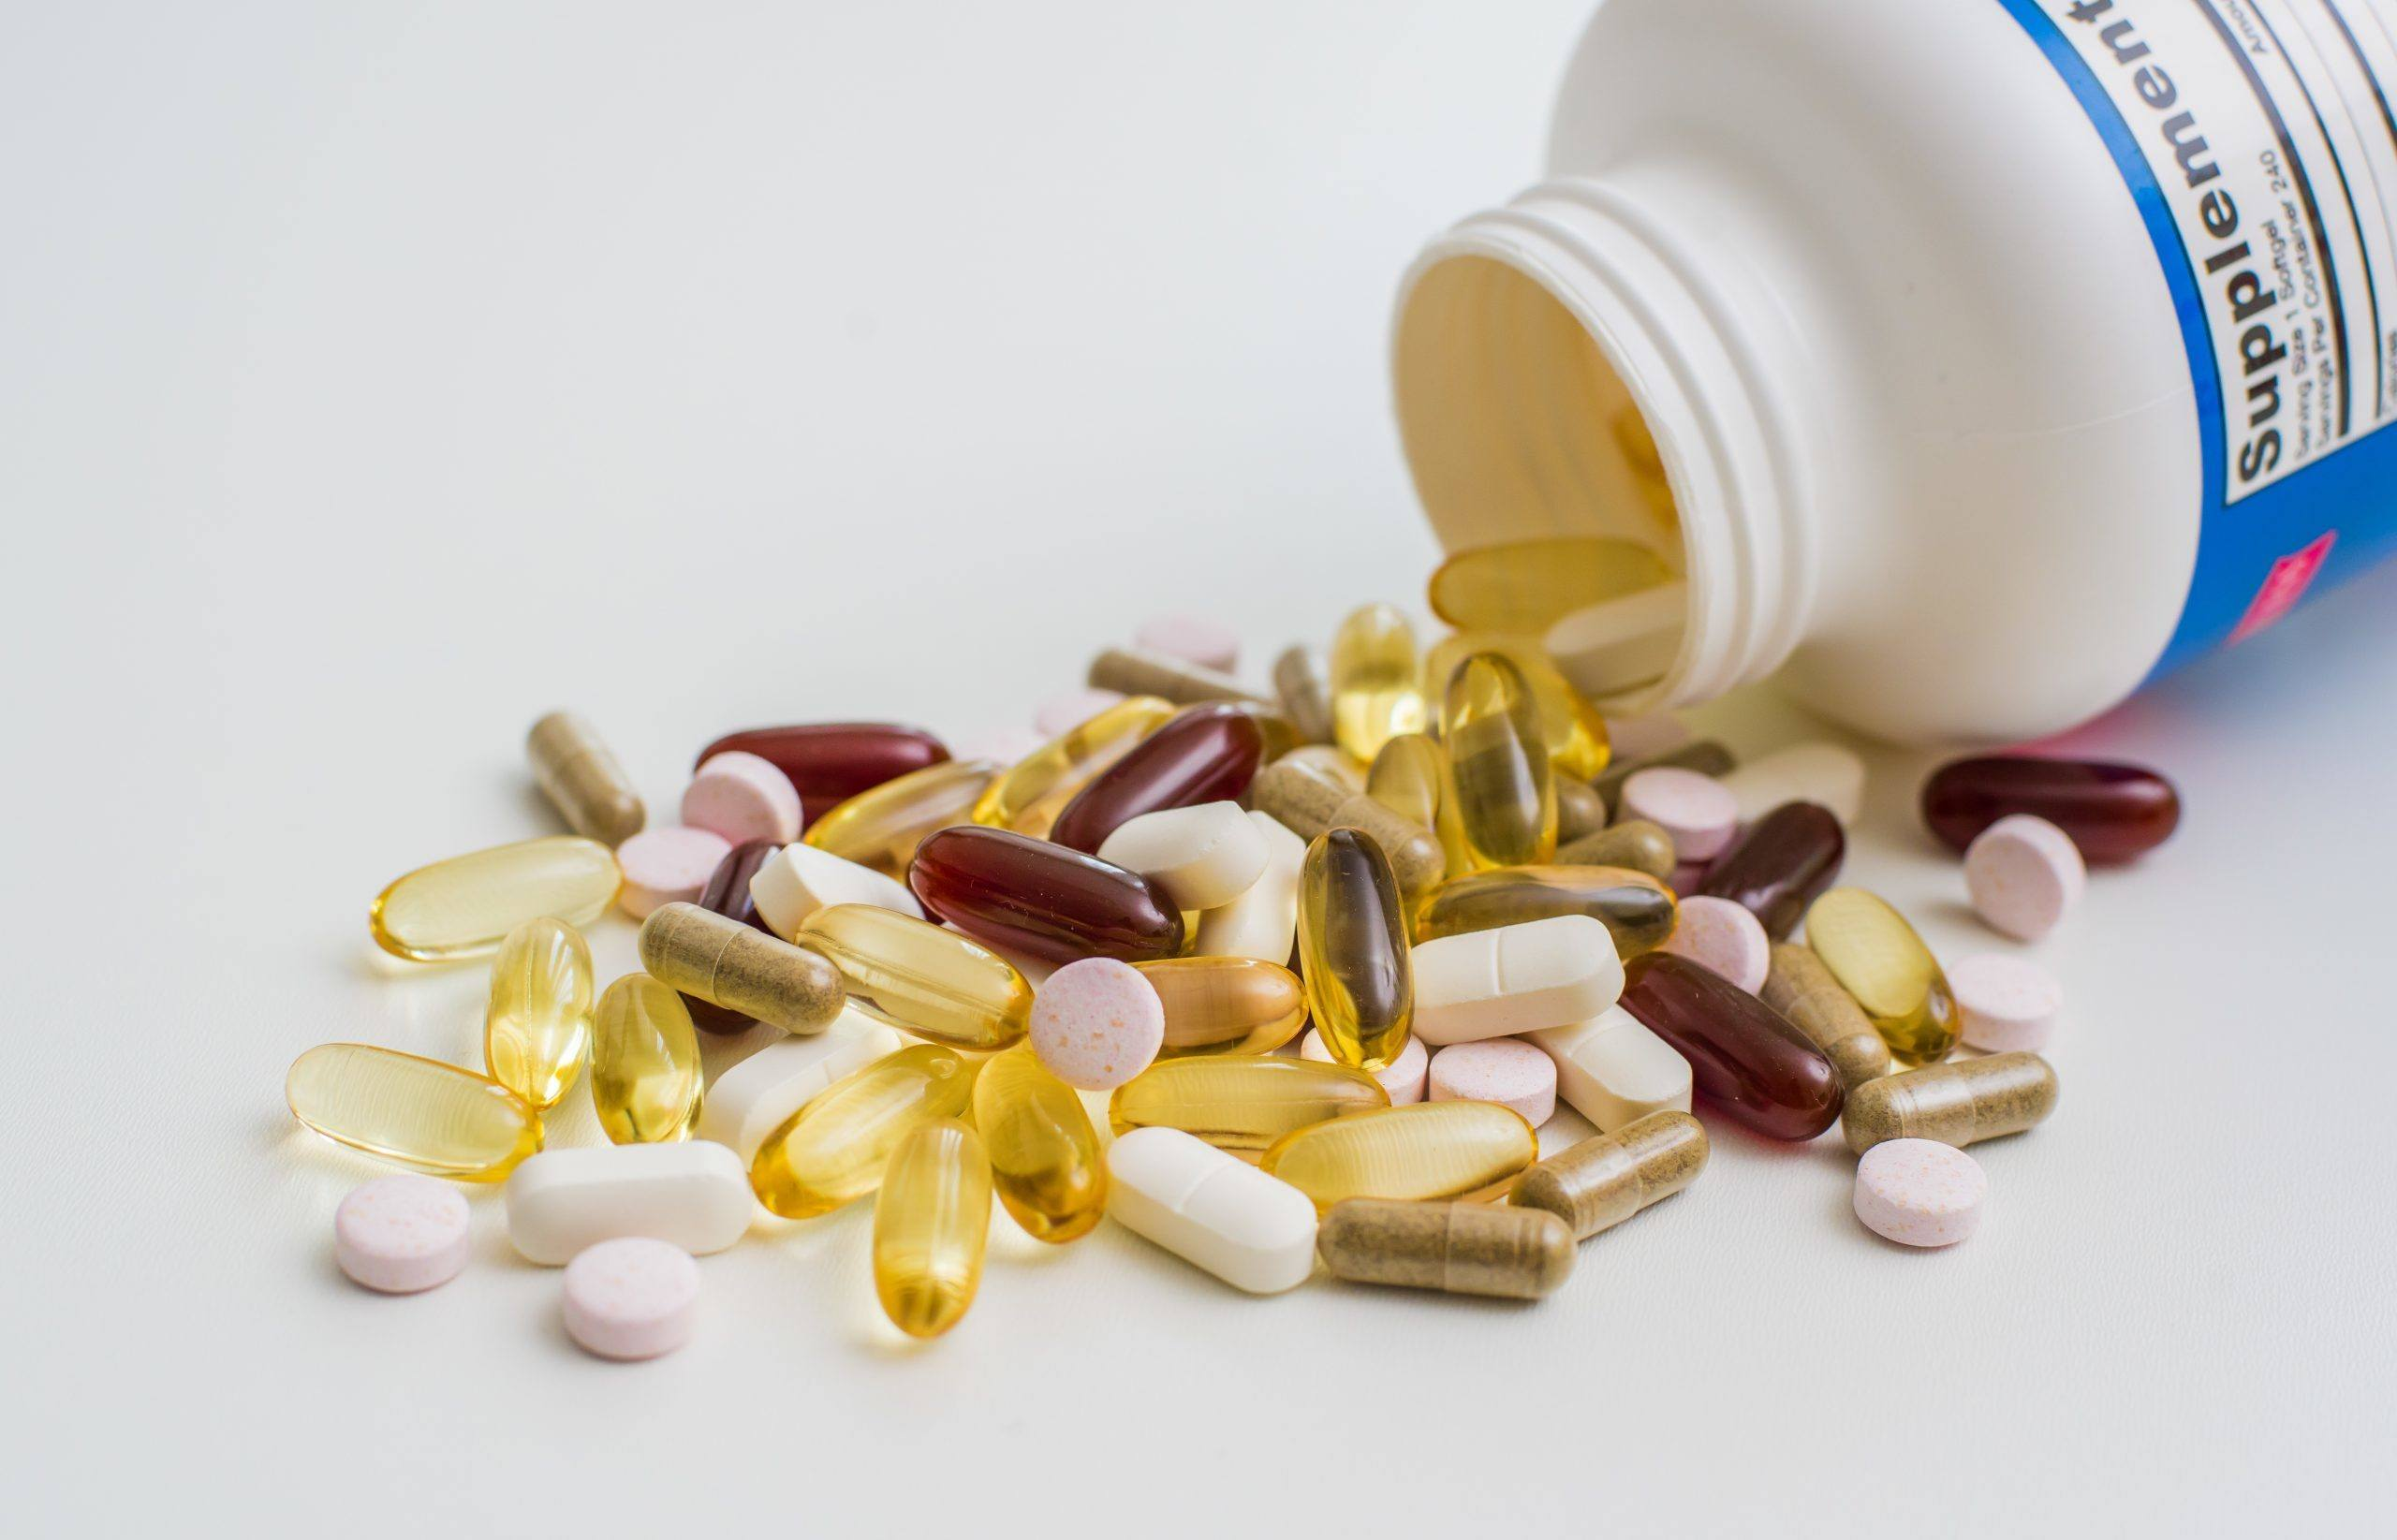 How Dietary Supplements Help You Burn More Fat